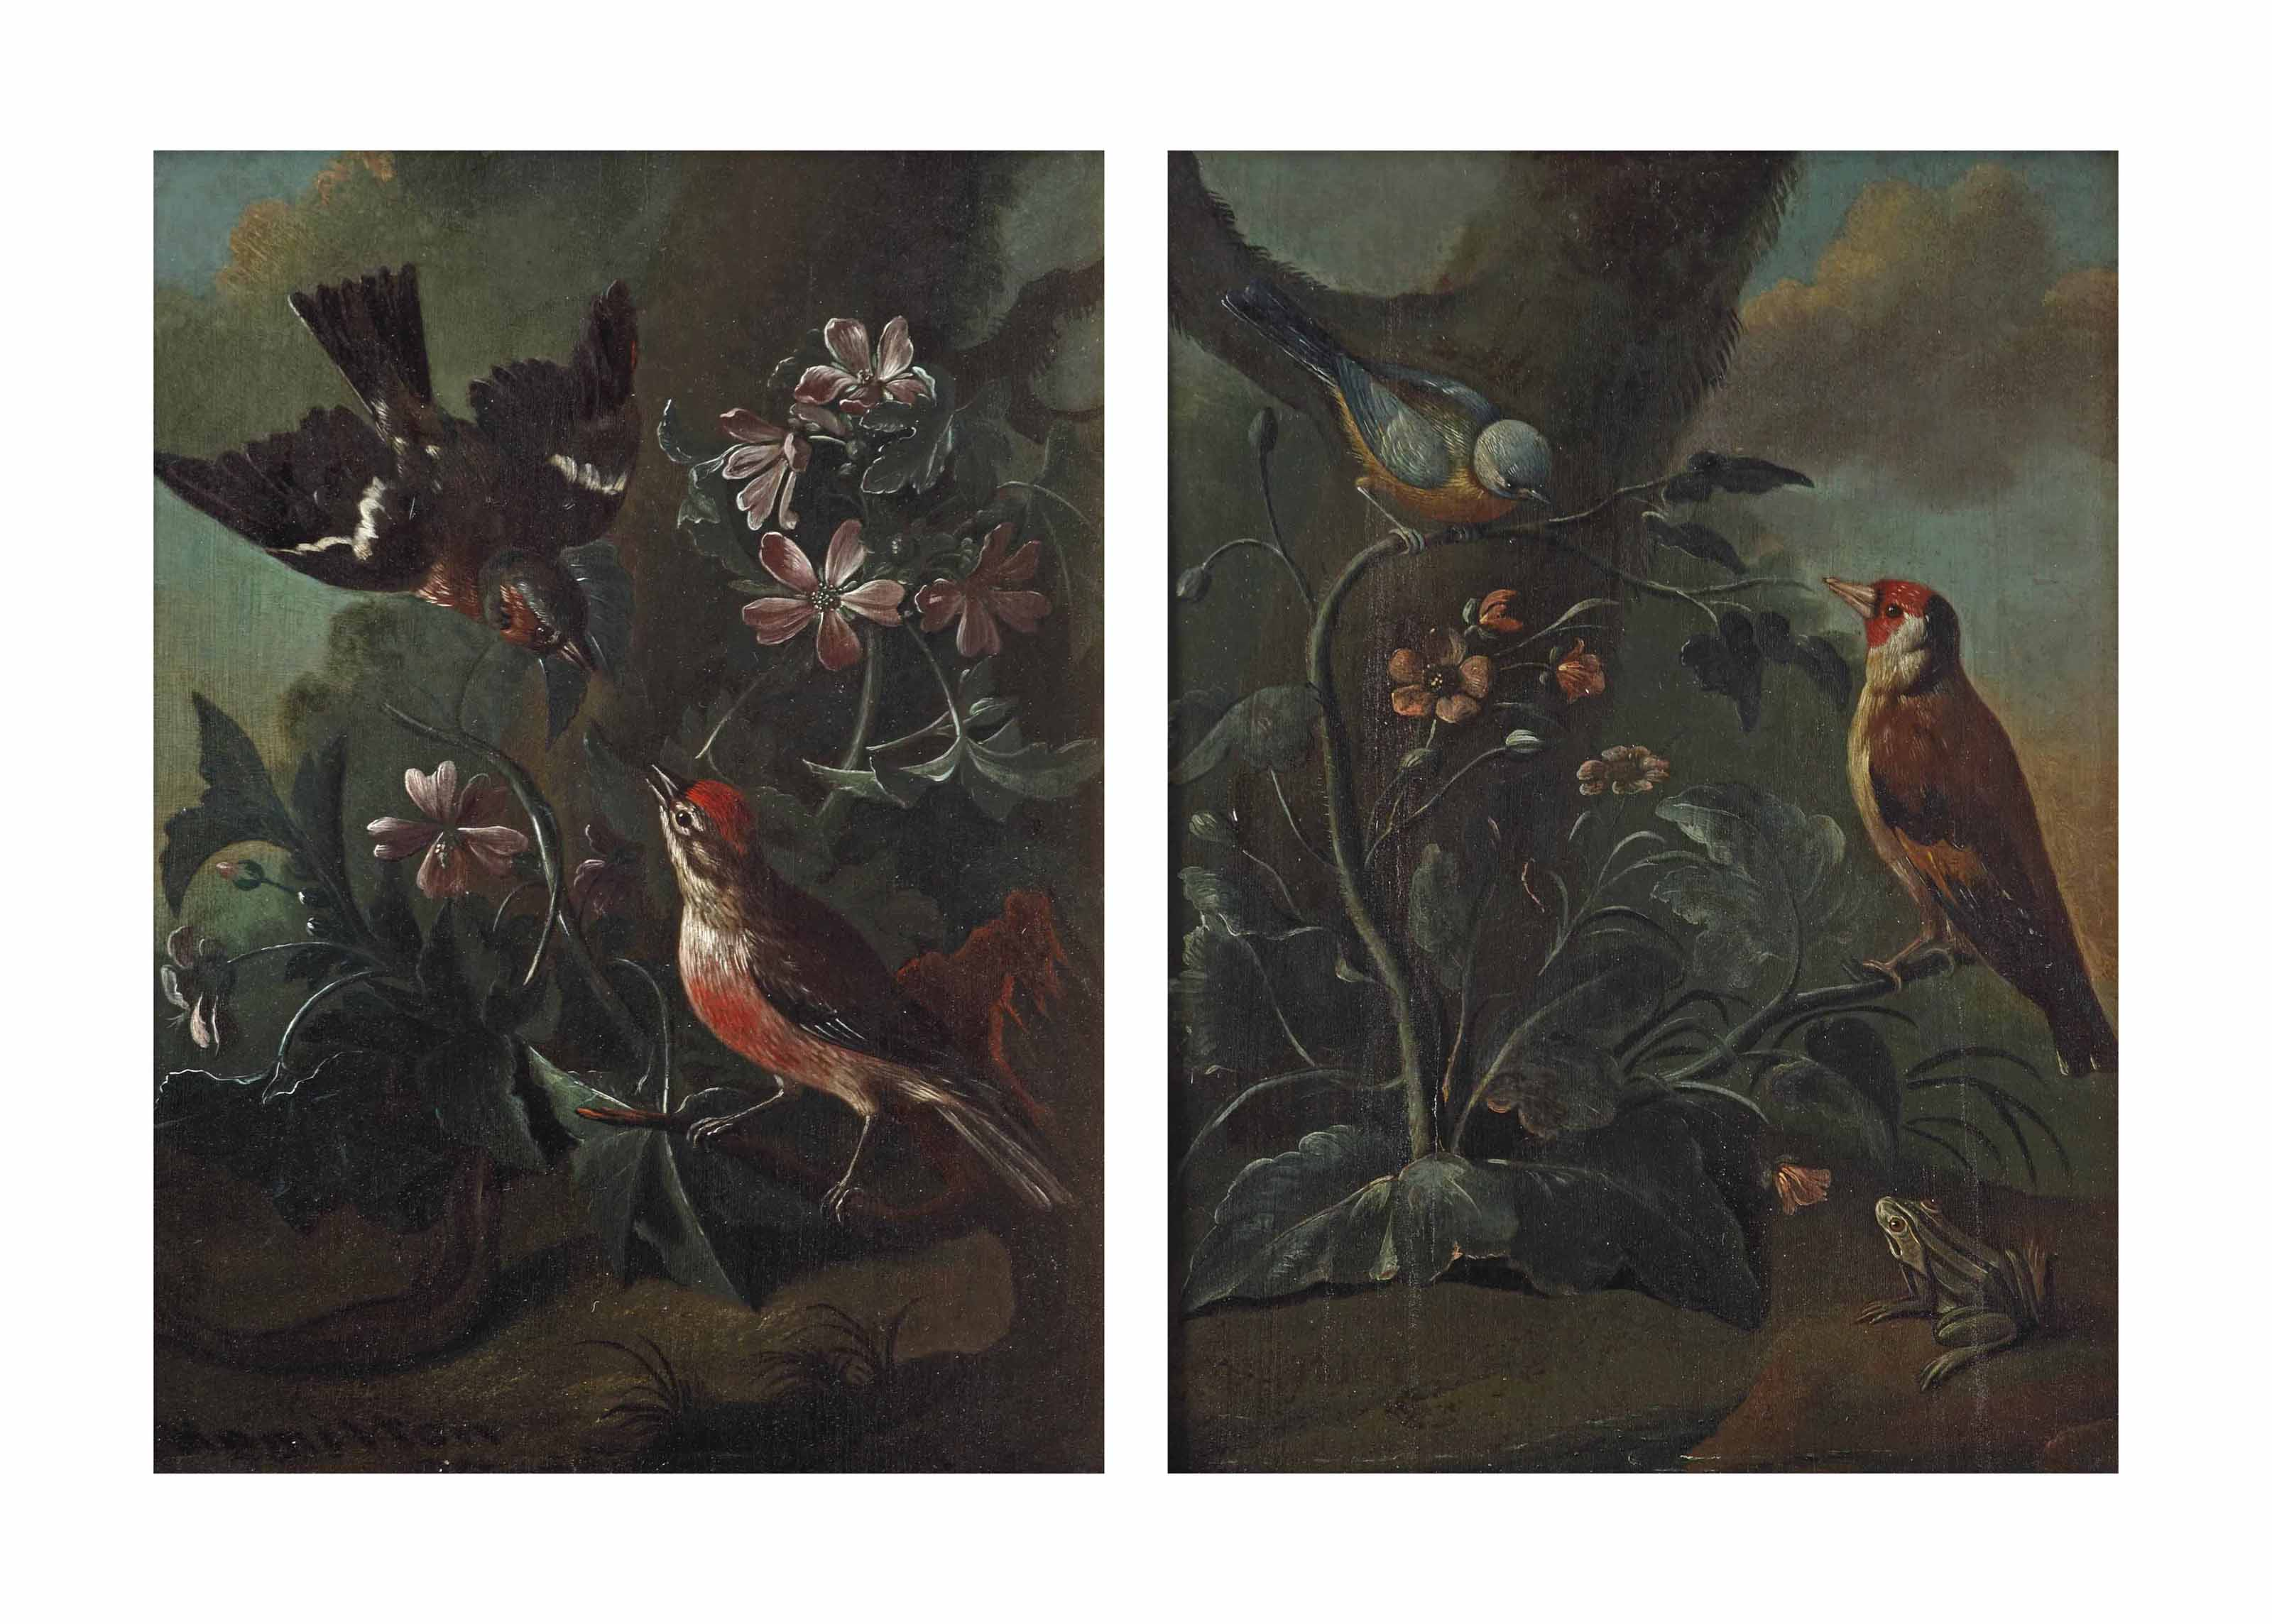 A forest floor with two finches in a bed of flowers; and A forest floor with a finch and a small bird with a frog